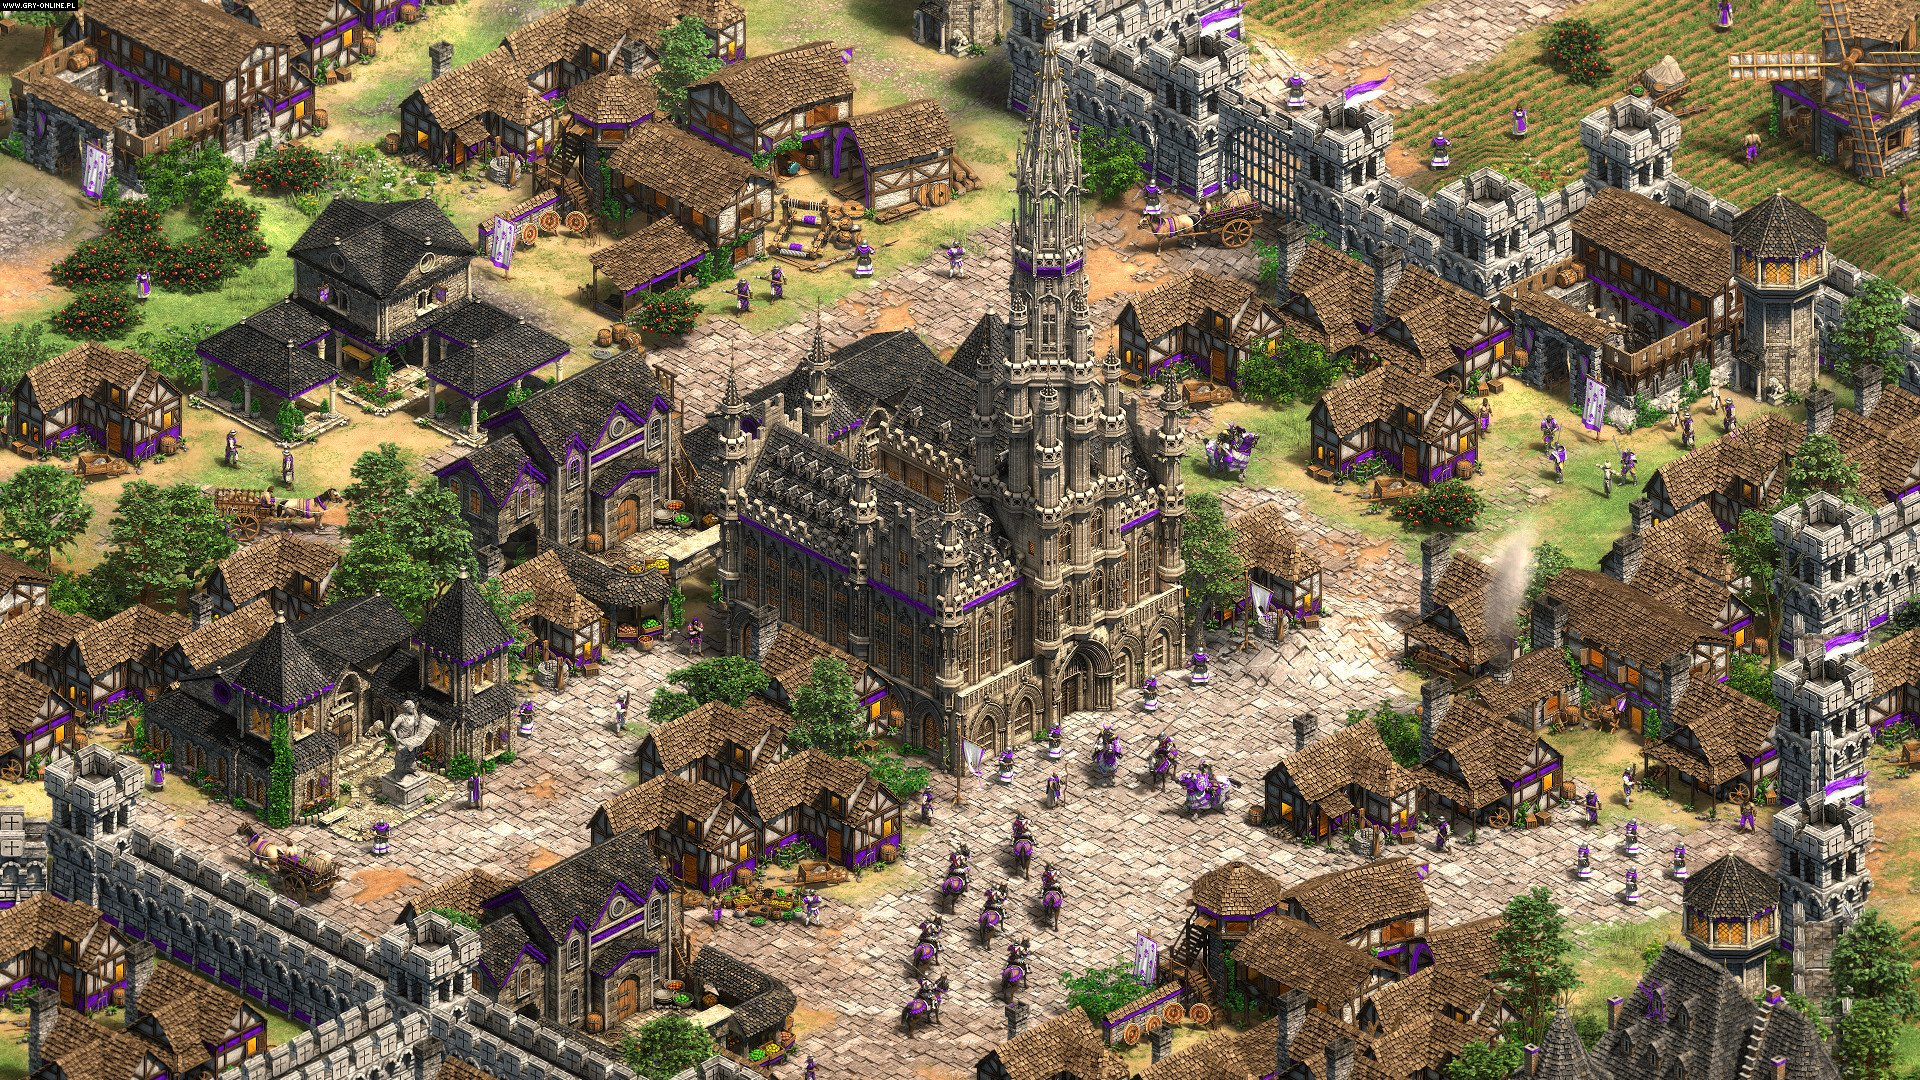 Age of Empires II: Definitive Edition-Lords of the West PC gameplay